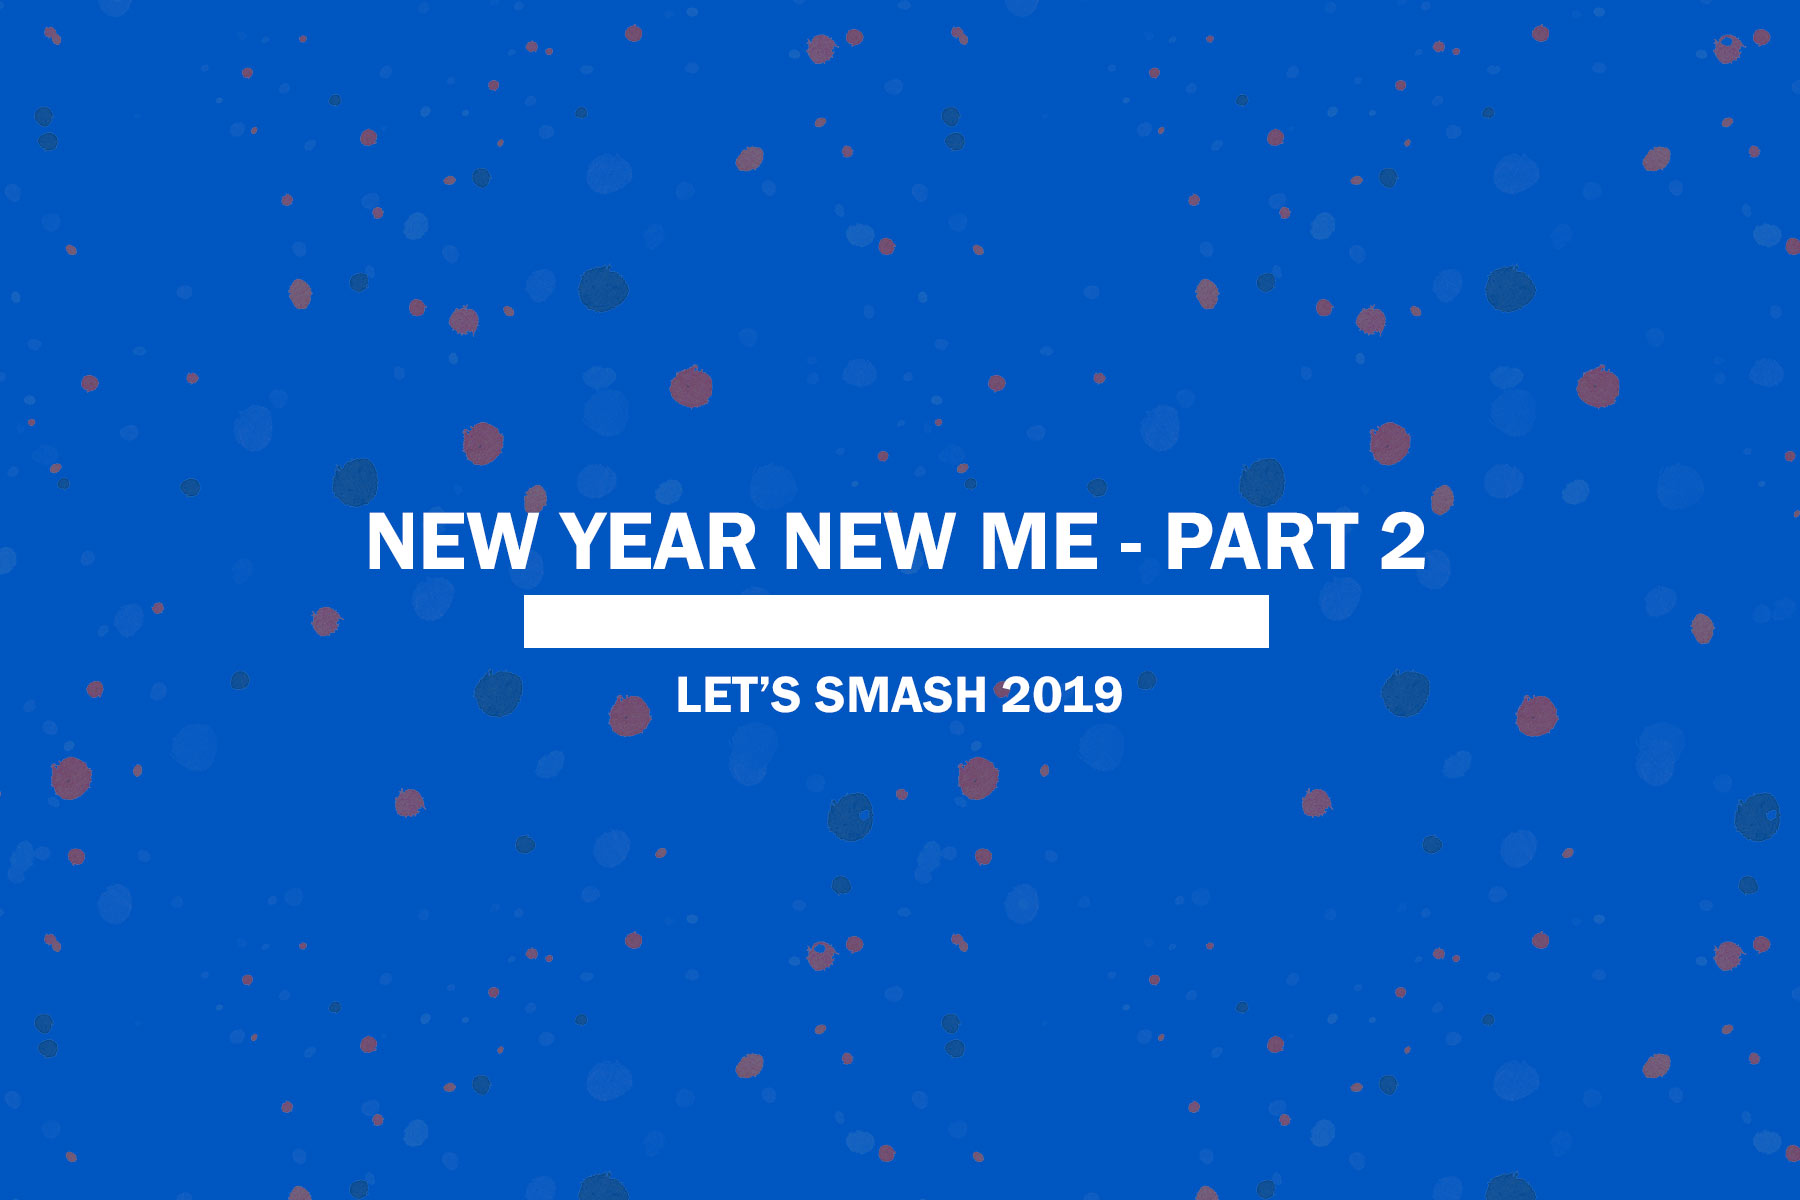 New Year New Me – Part 2